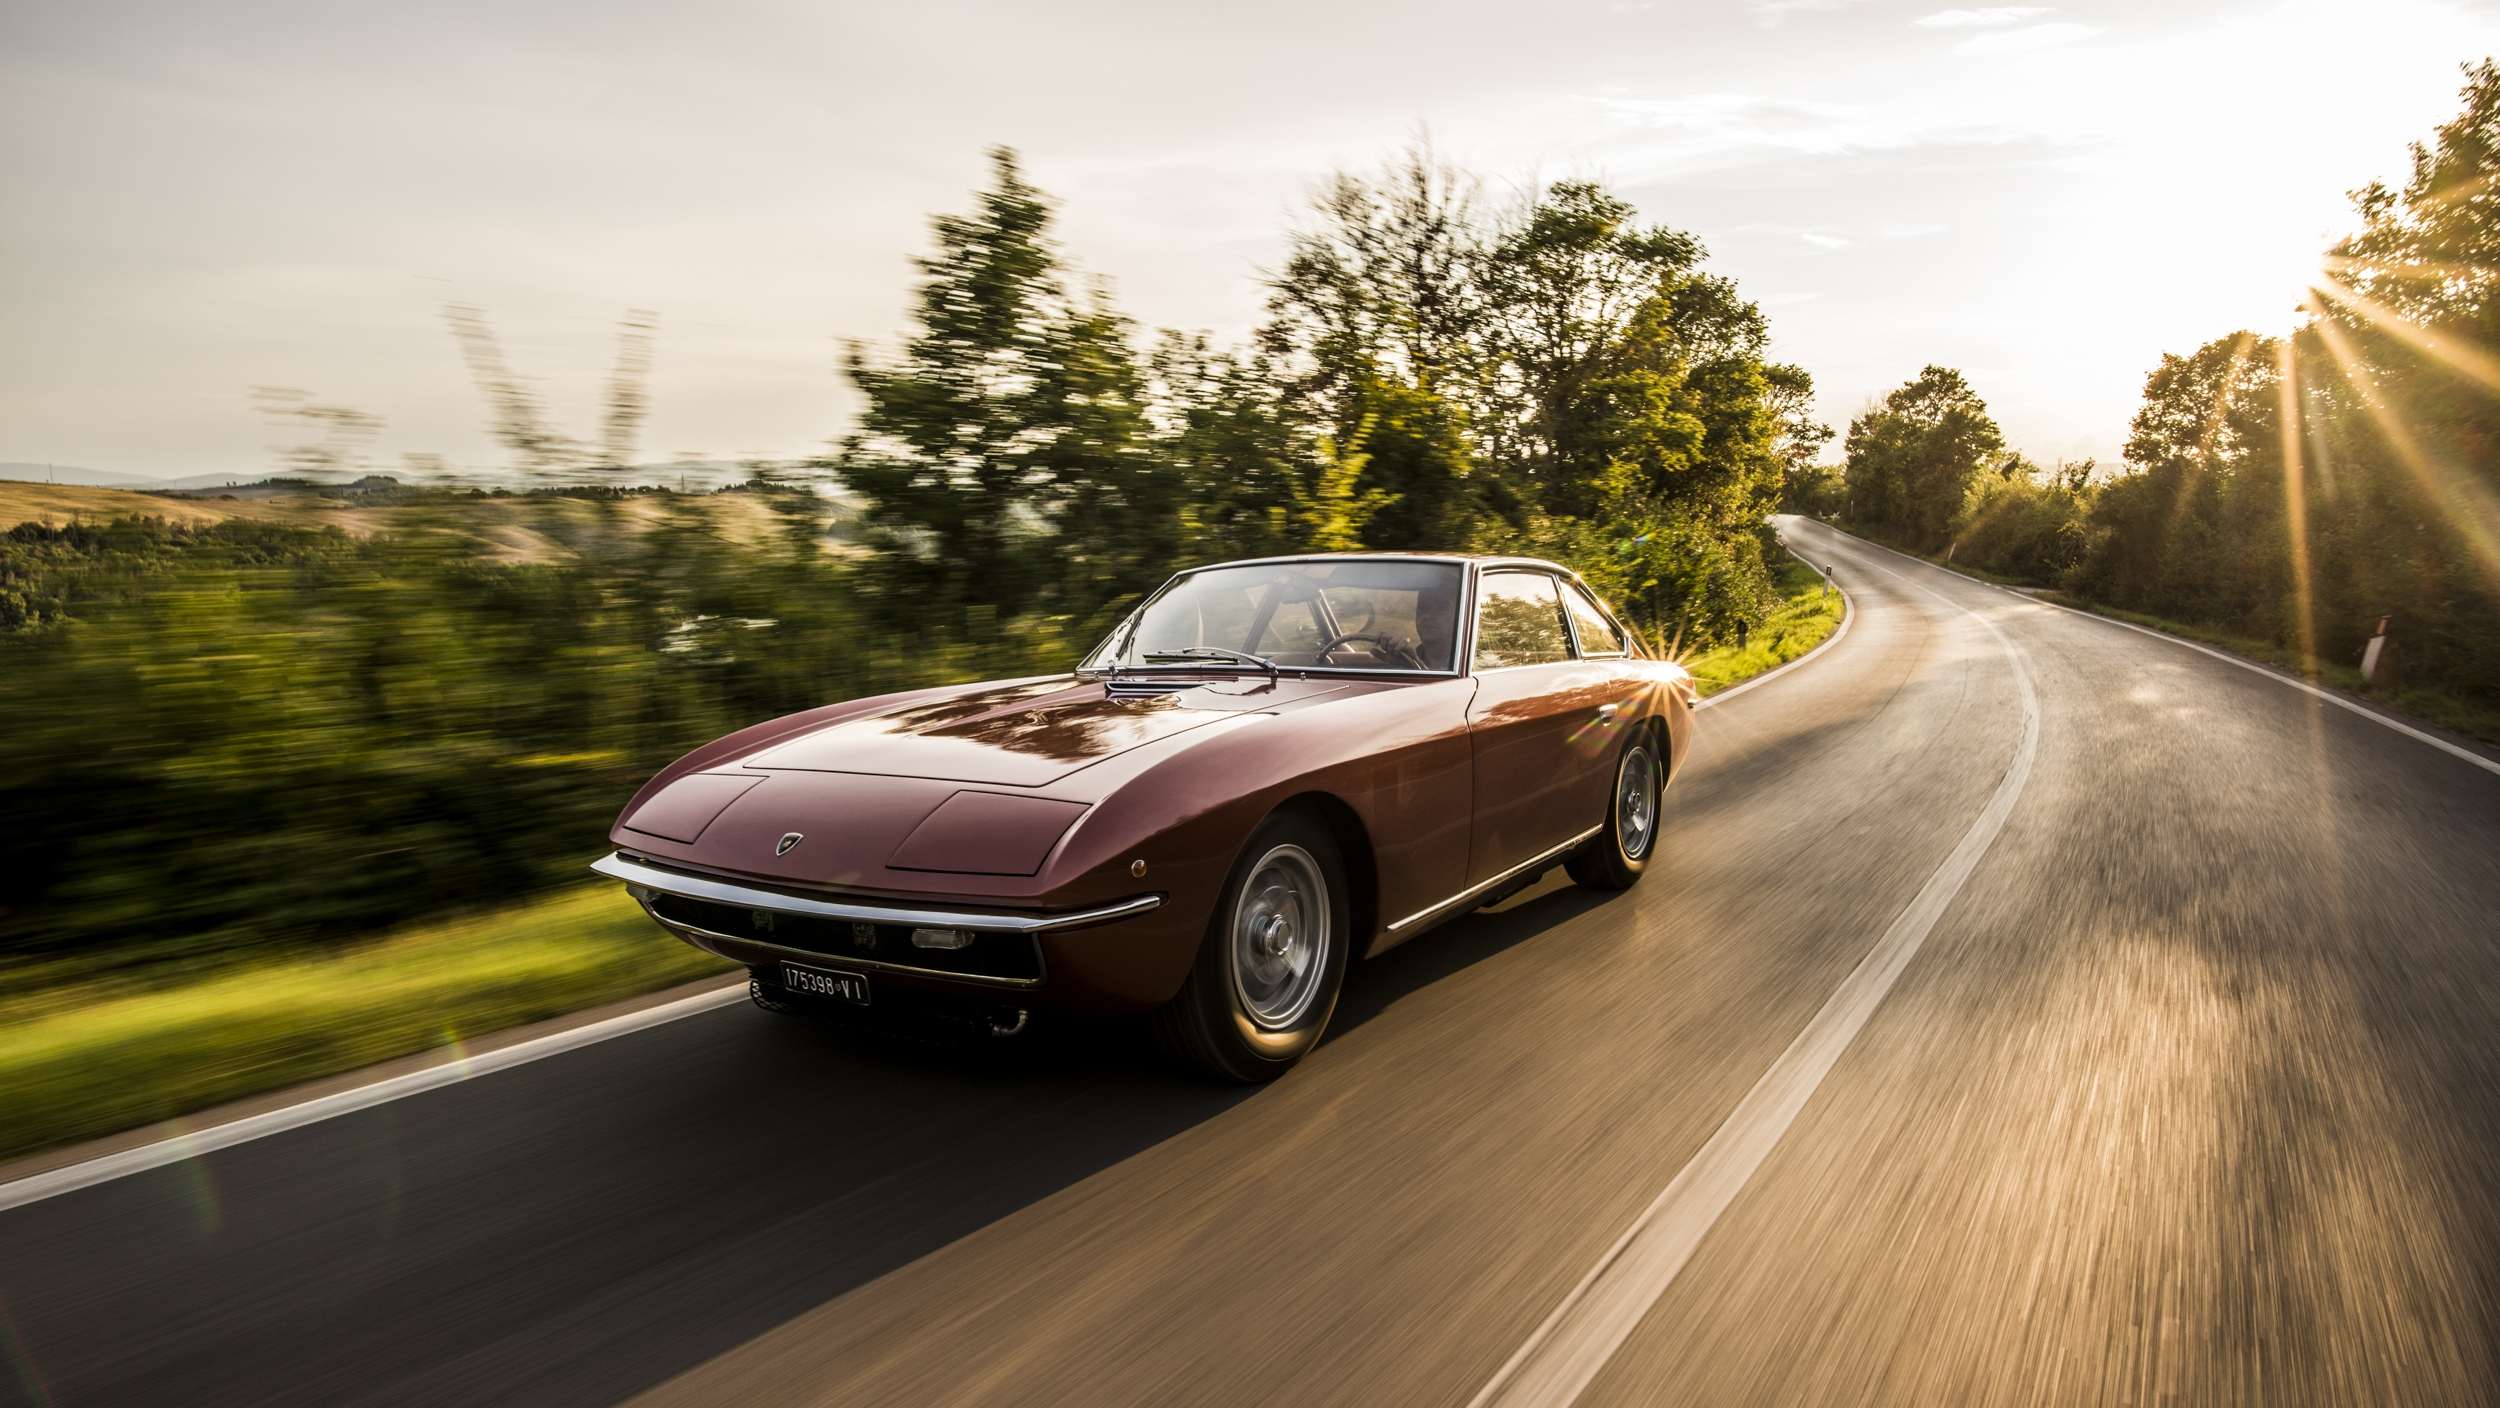 Lamborghini Islero Latest News Reviews Specifications Prices